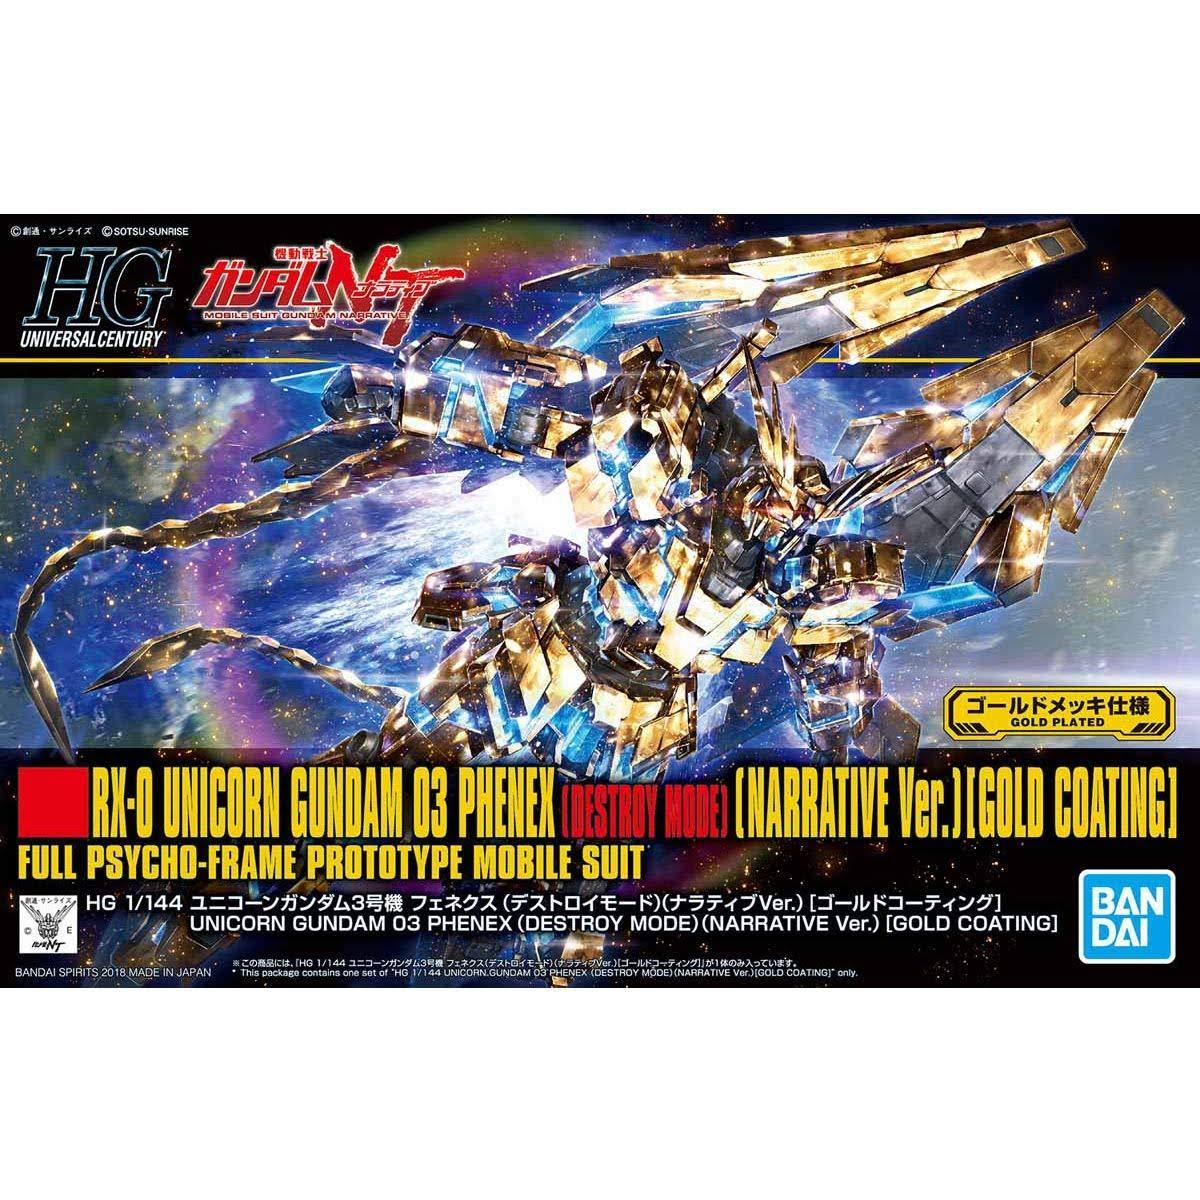 Bandai HGUC 217 03 Phenex Destroy Mode Unicorn Gundam Model Kit - 1/144 Scale